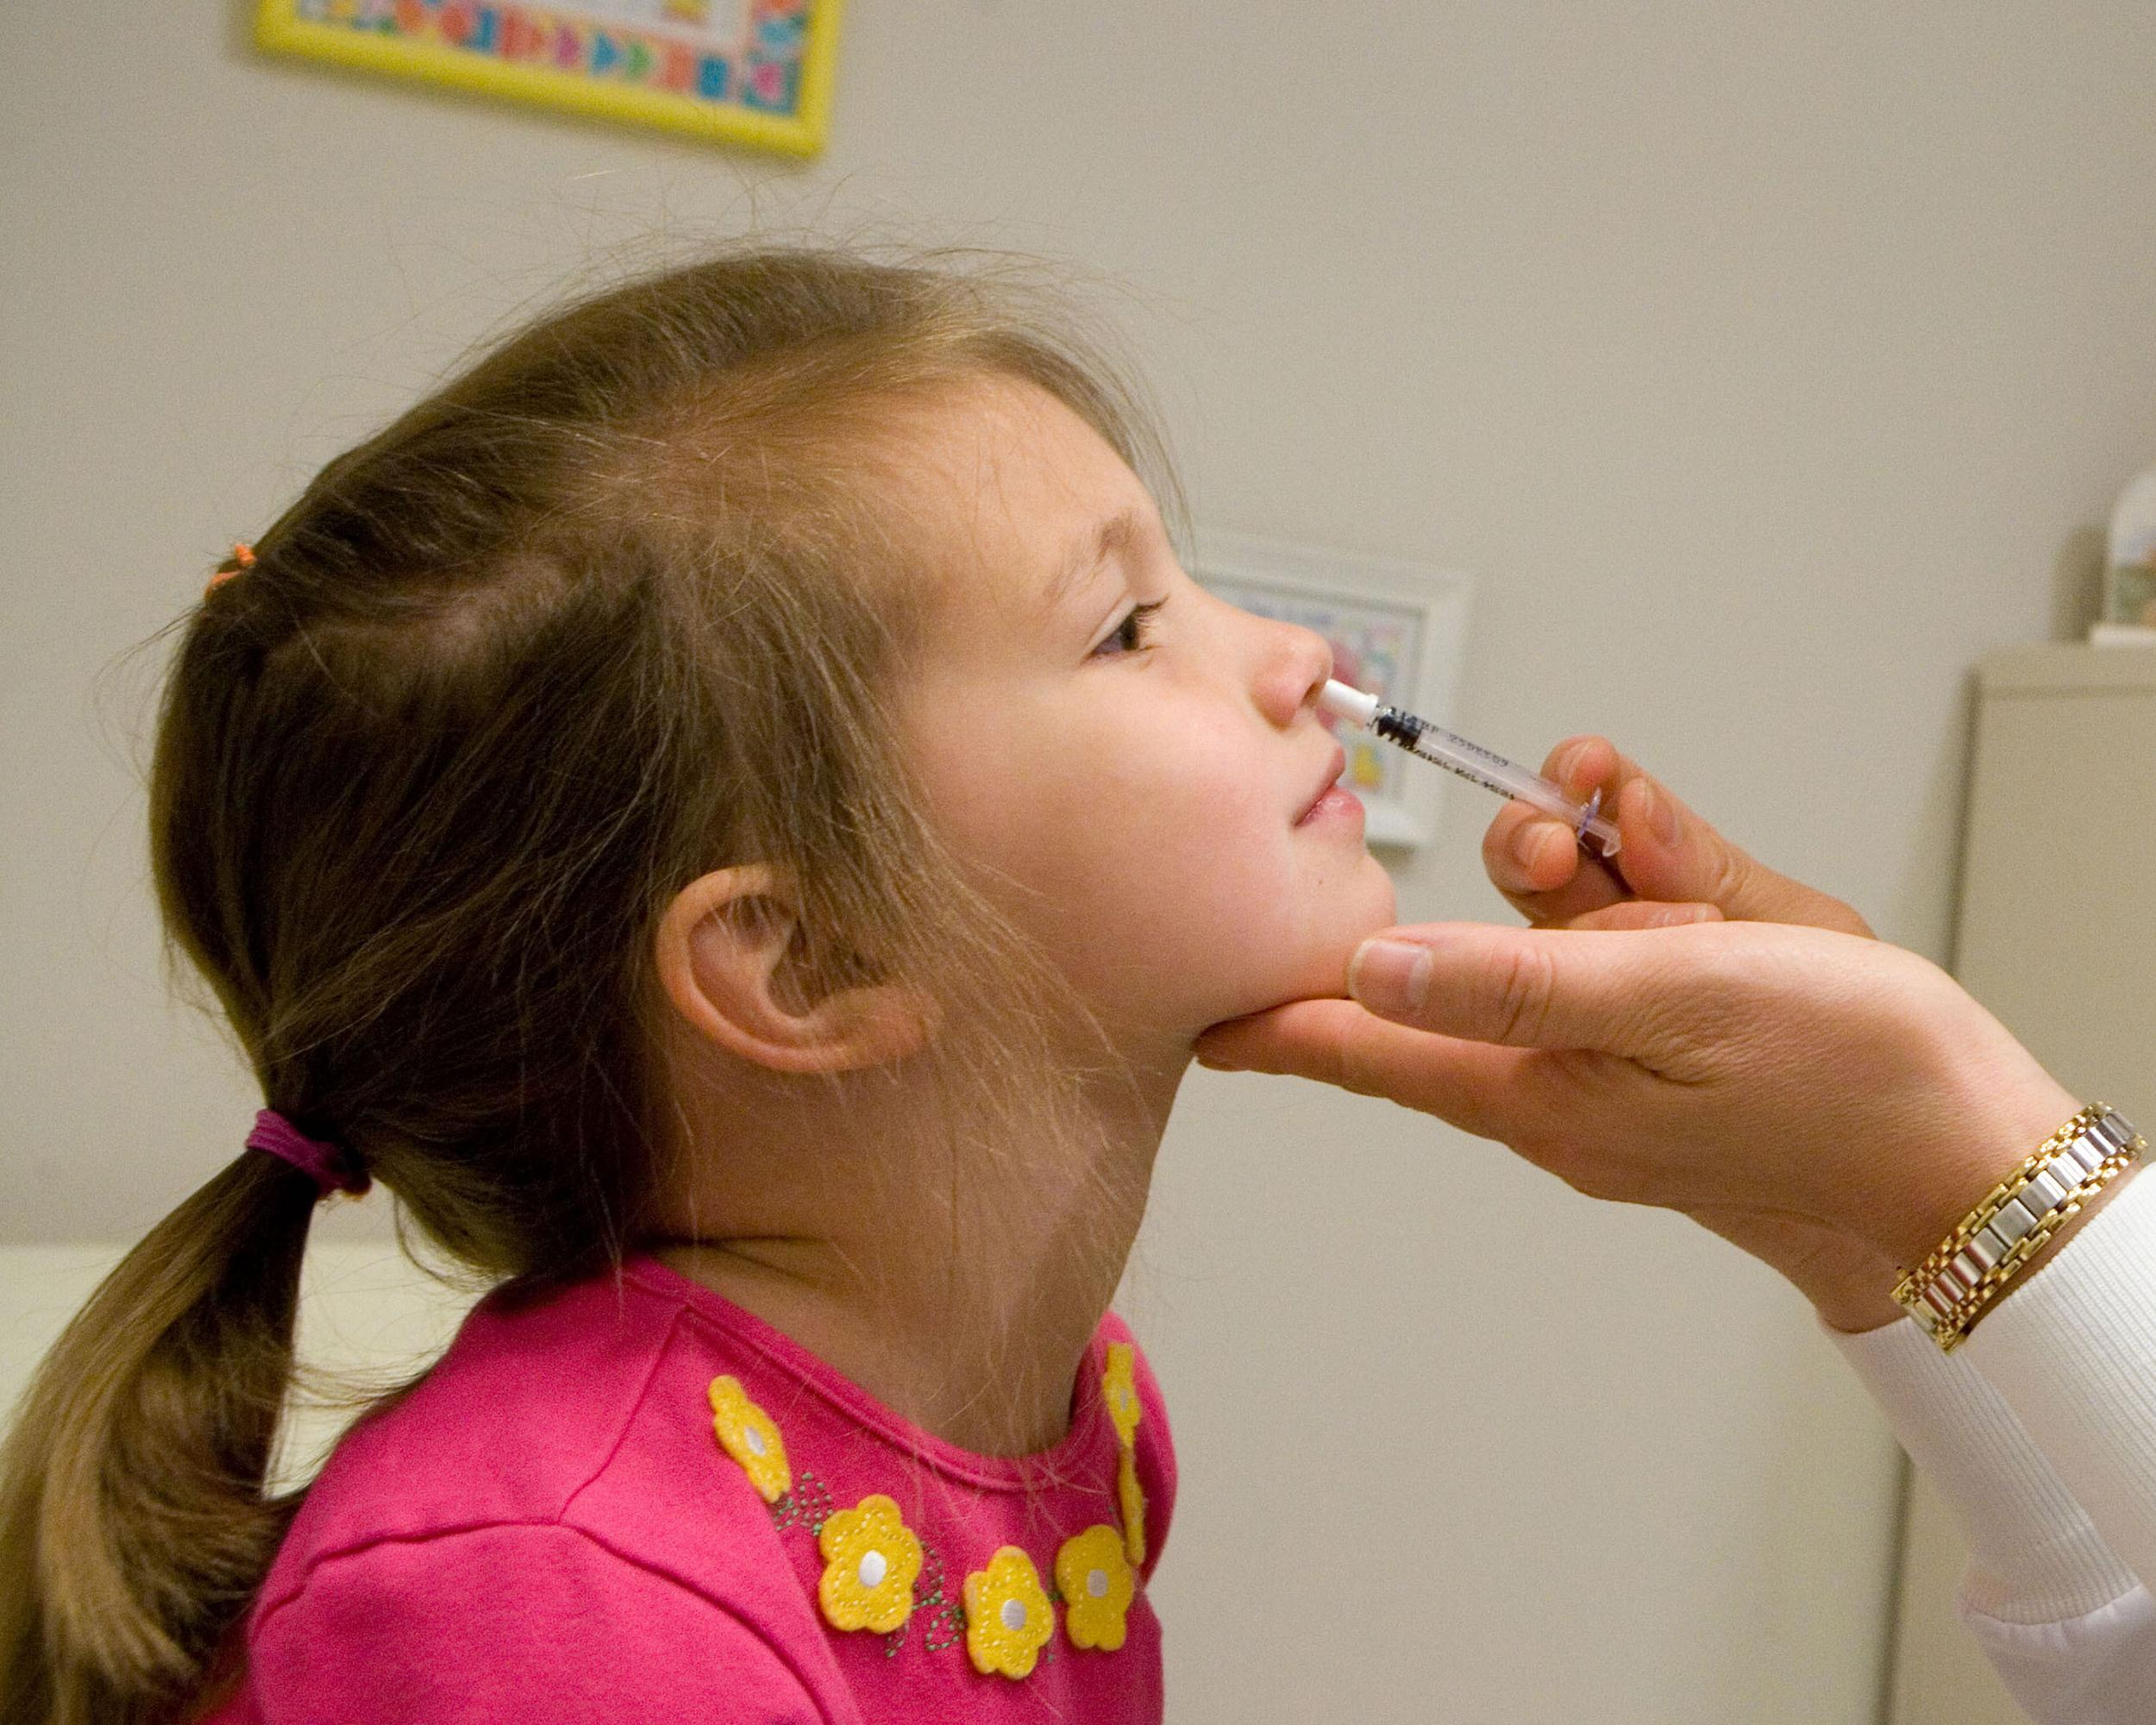 Image: A healthcare provider uses an empty sample sprayer to demonstrate how to administer FluMist to a preschooler.